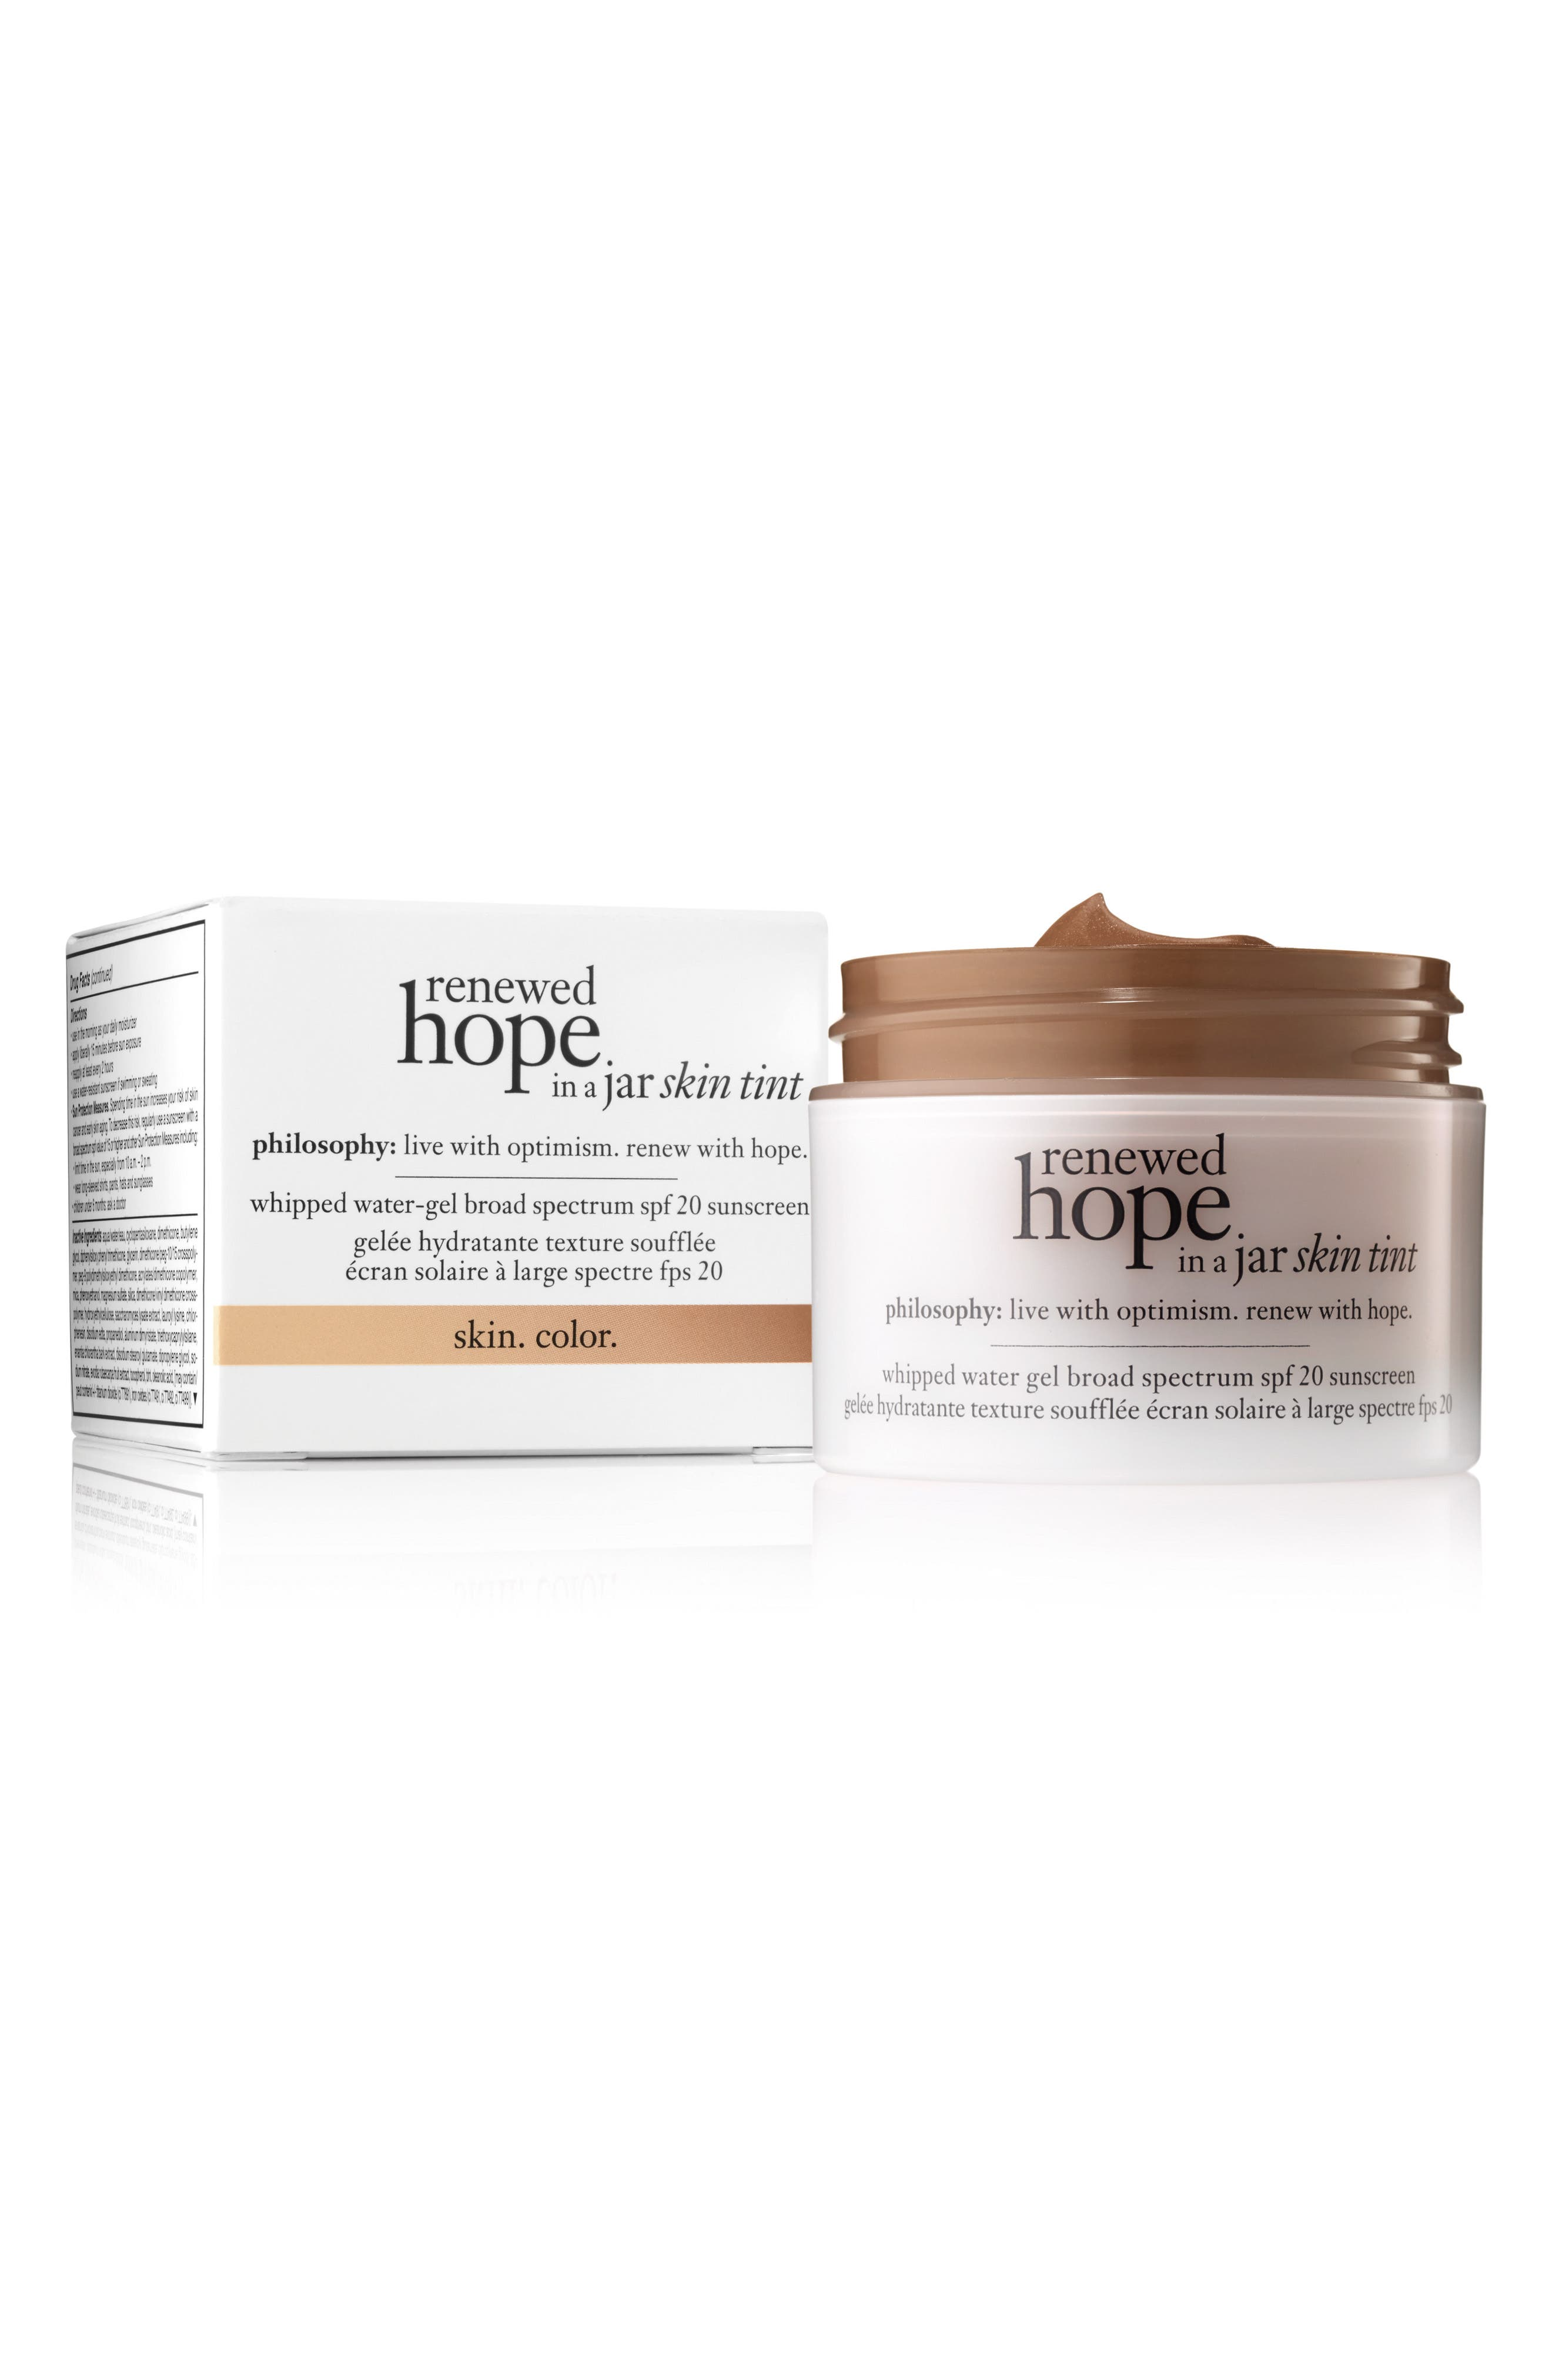 philosophy renewed hope in a jar skin tint